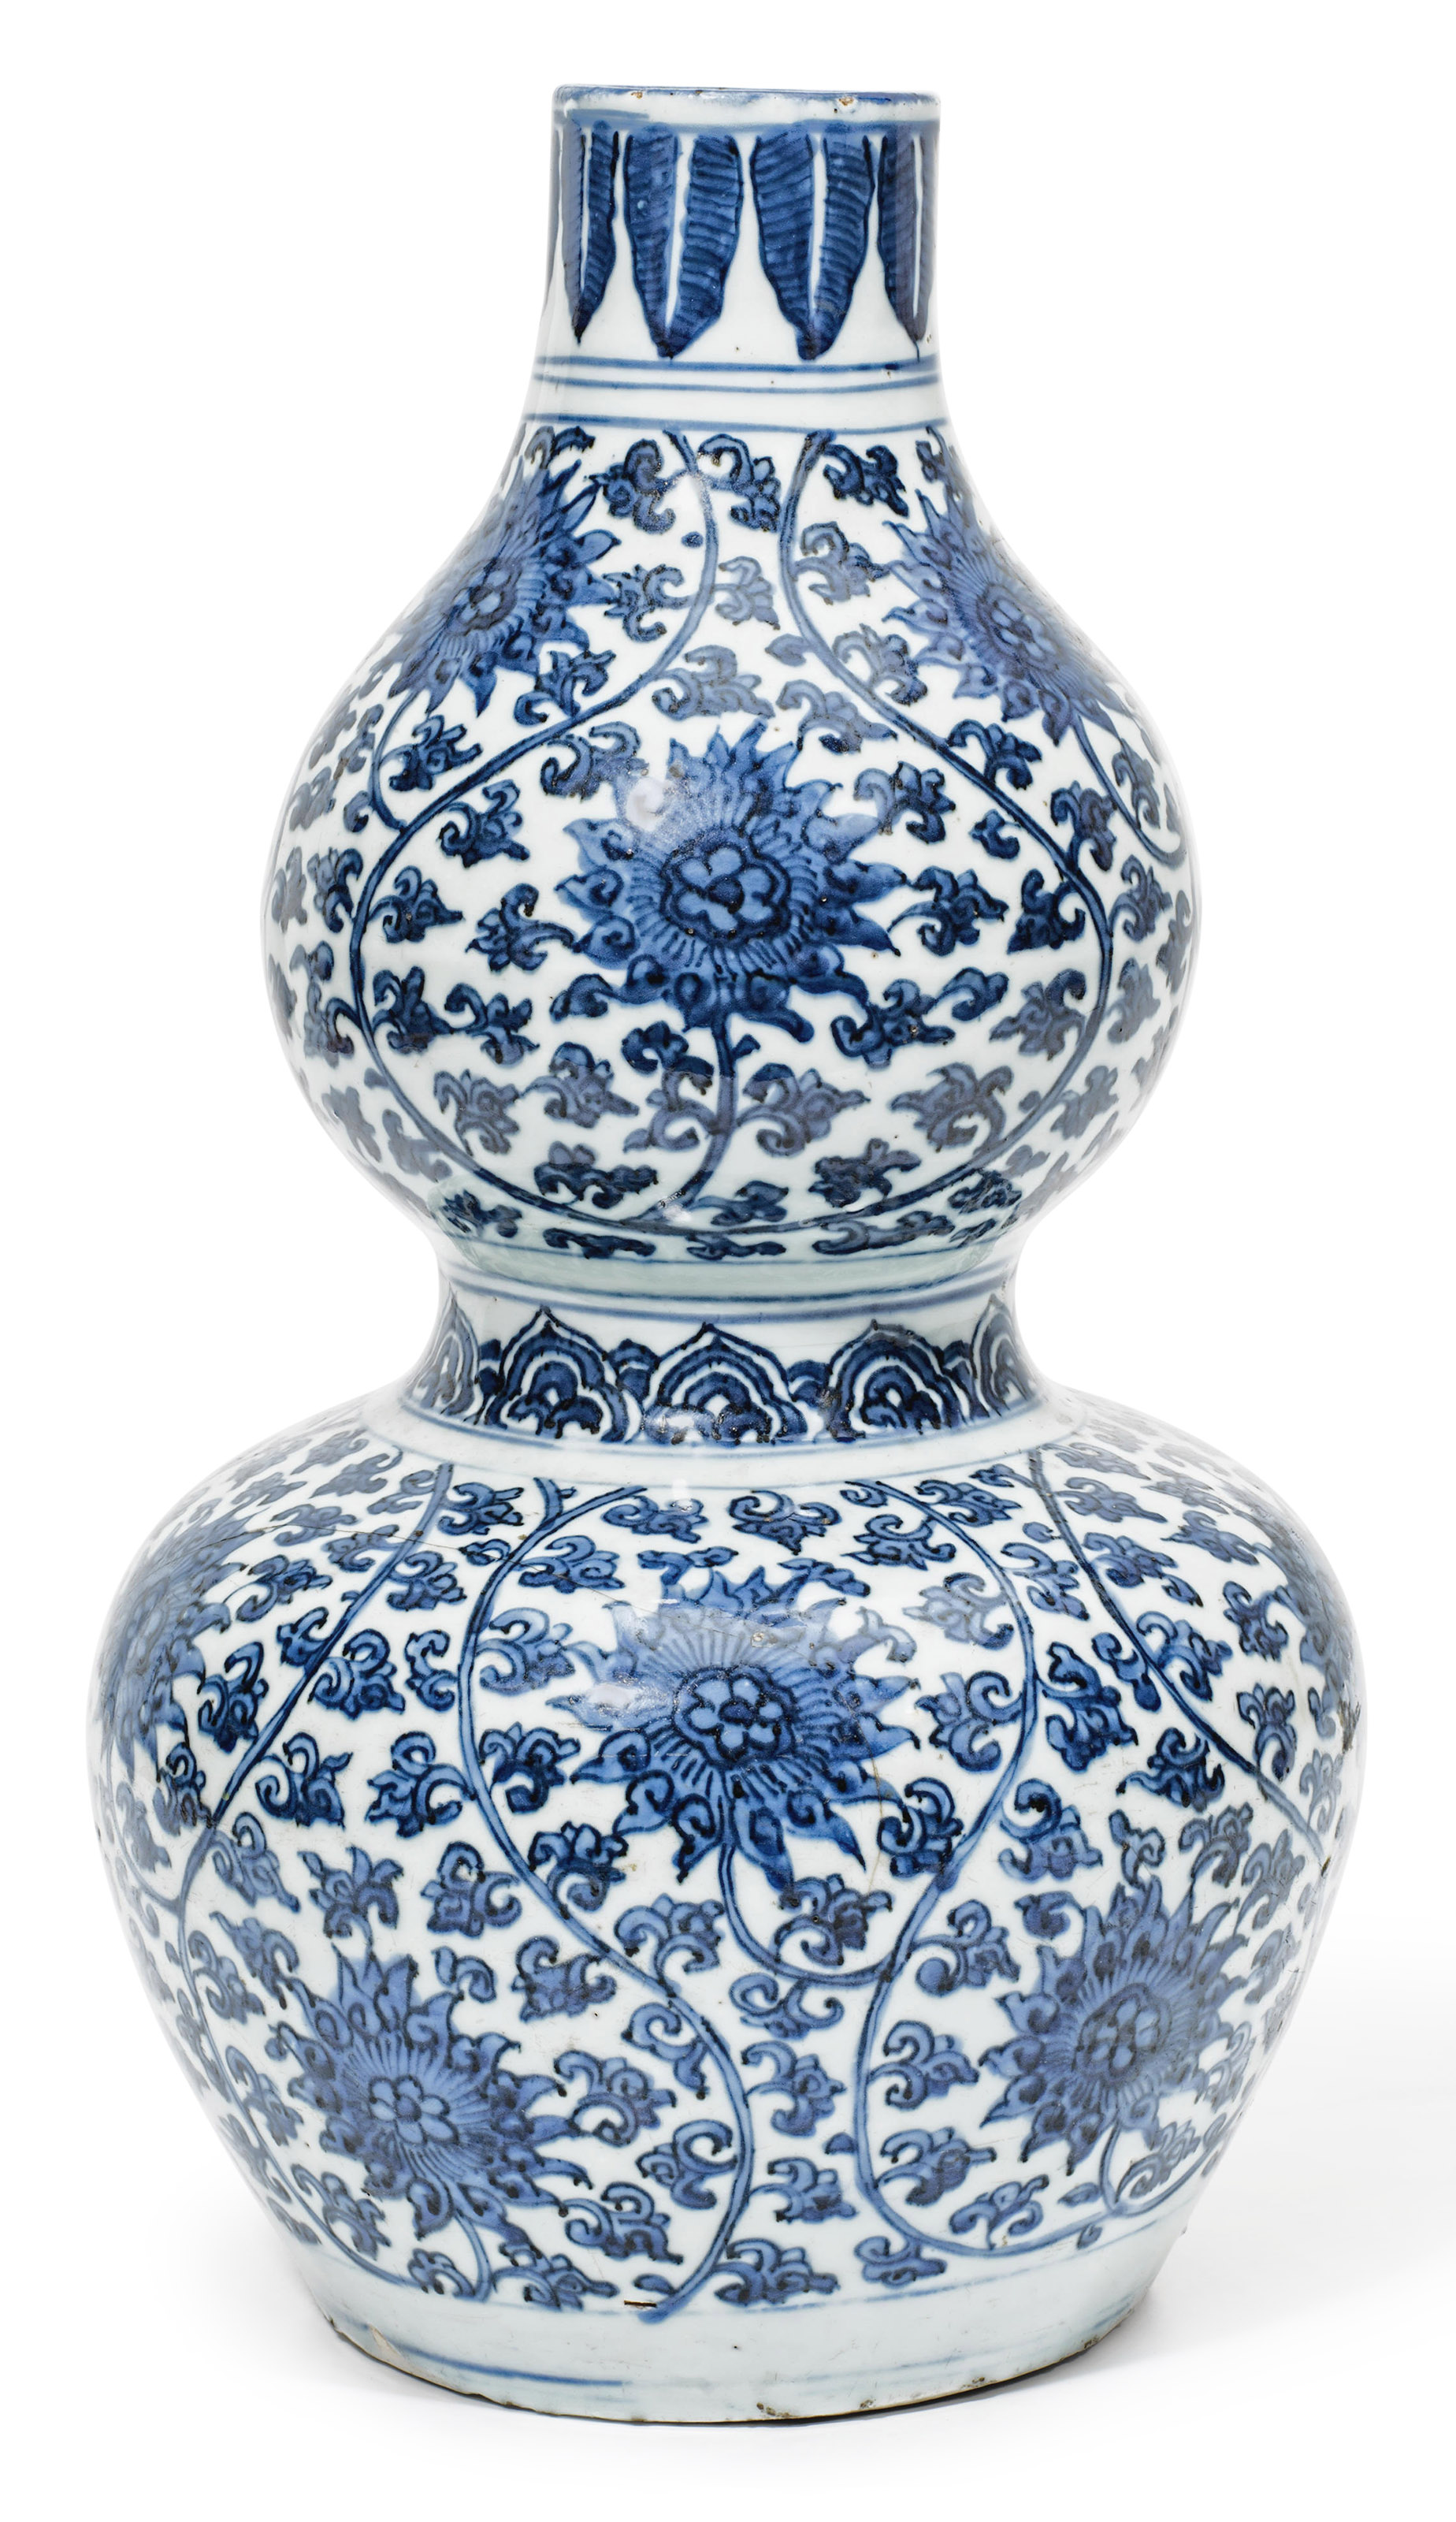 A blue and white double gourd lotus vase jiajing period 1522 a blue and white double gourd lotus vase reviewsmspy